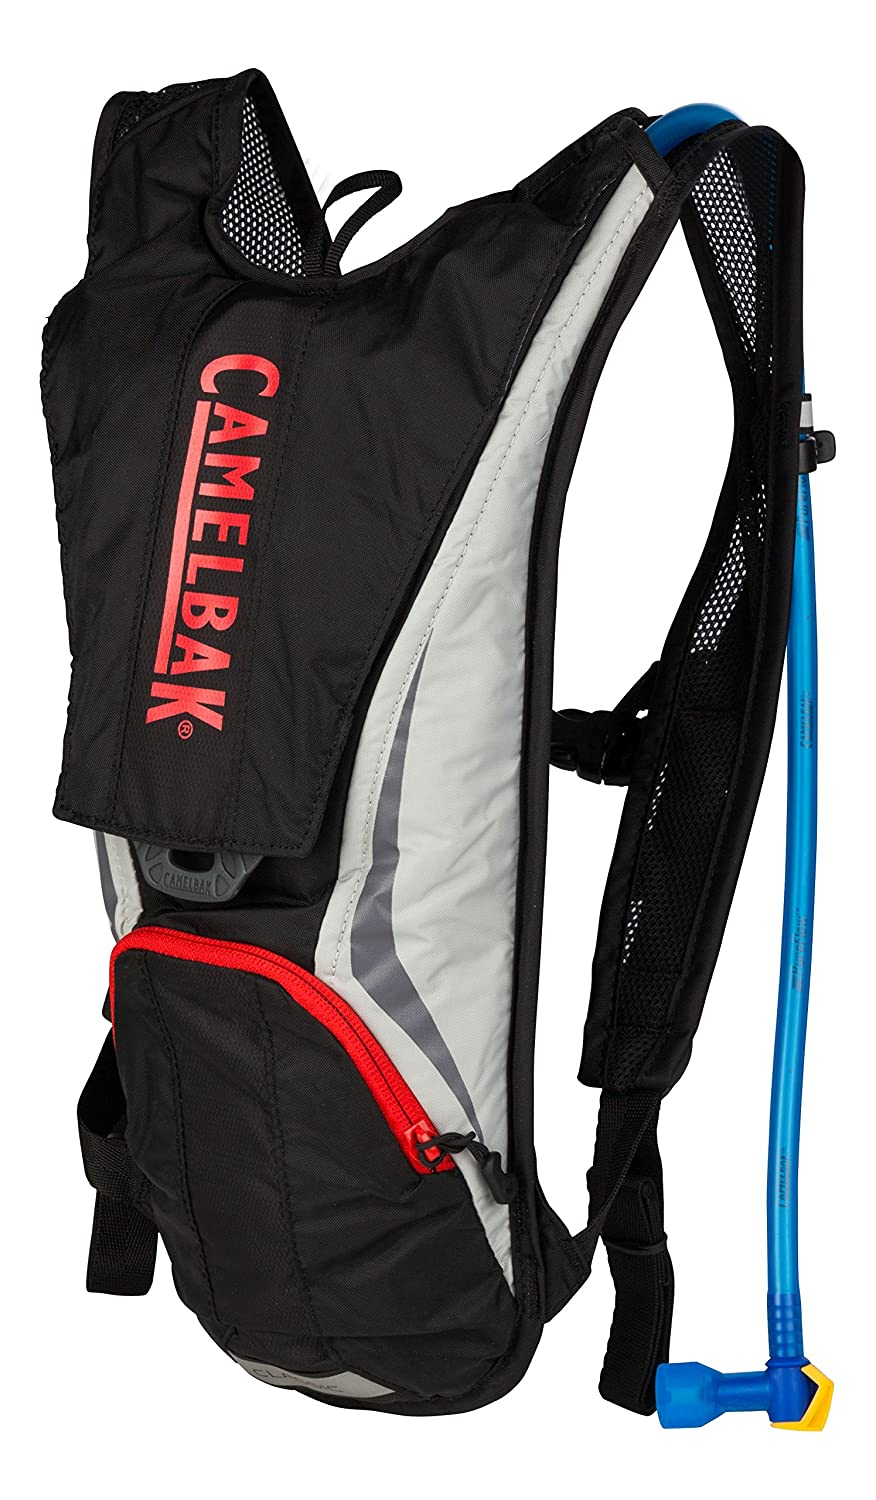 CamelBak 2016 Classic Hydration Pack Black 70-Ounce Camelbak Products 62176